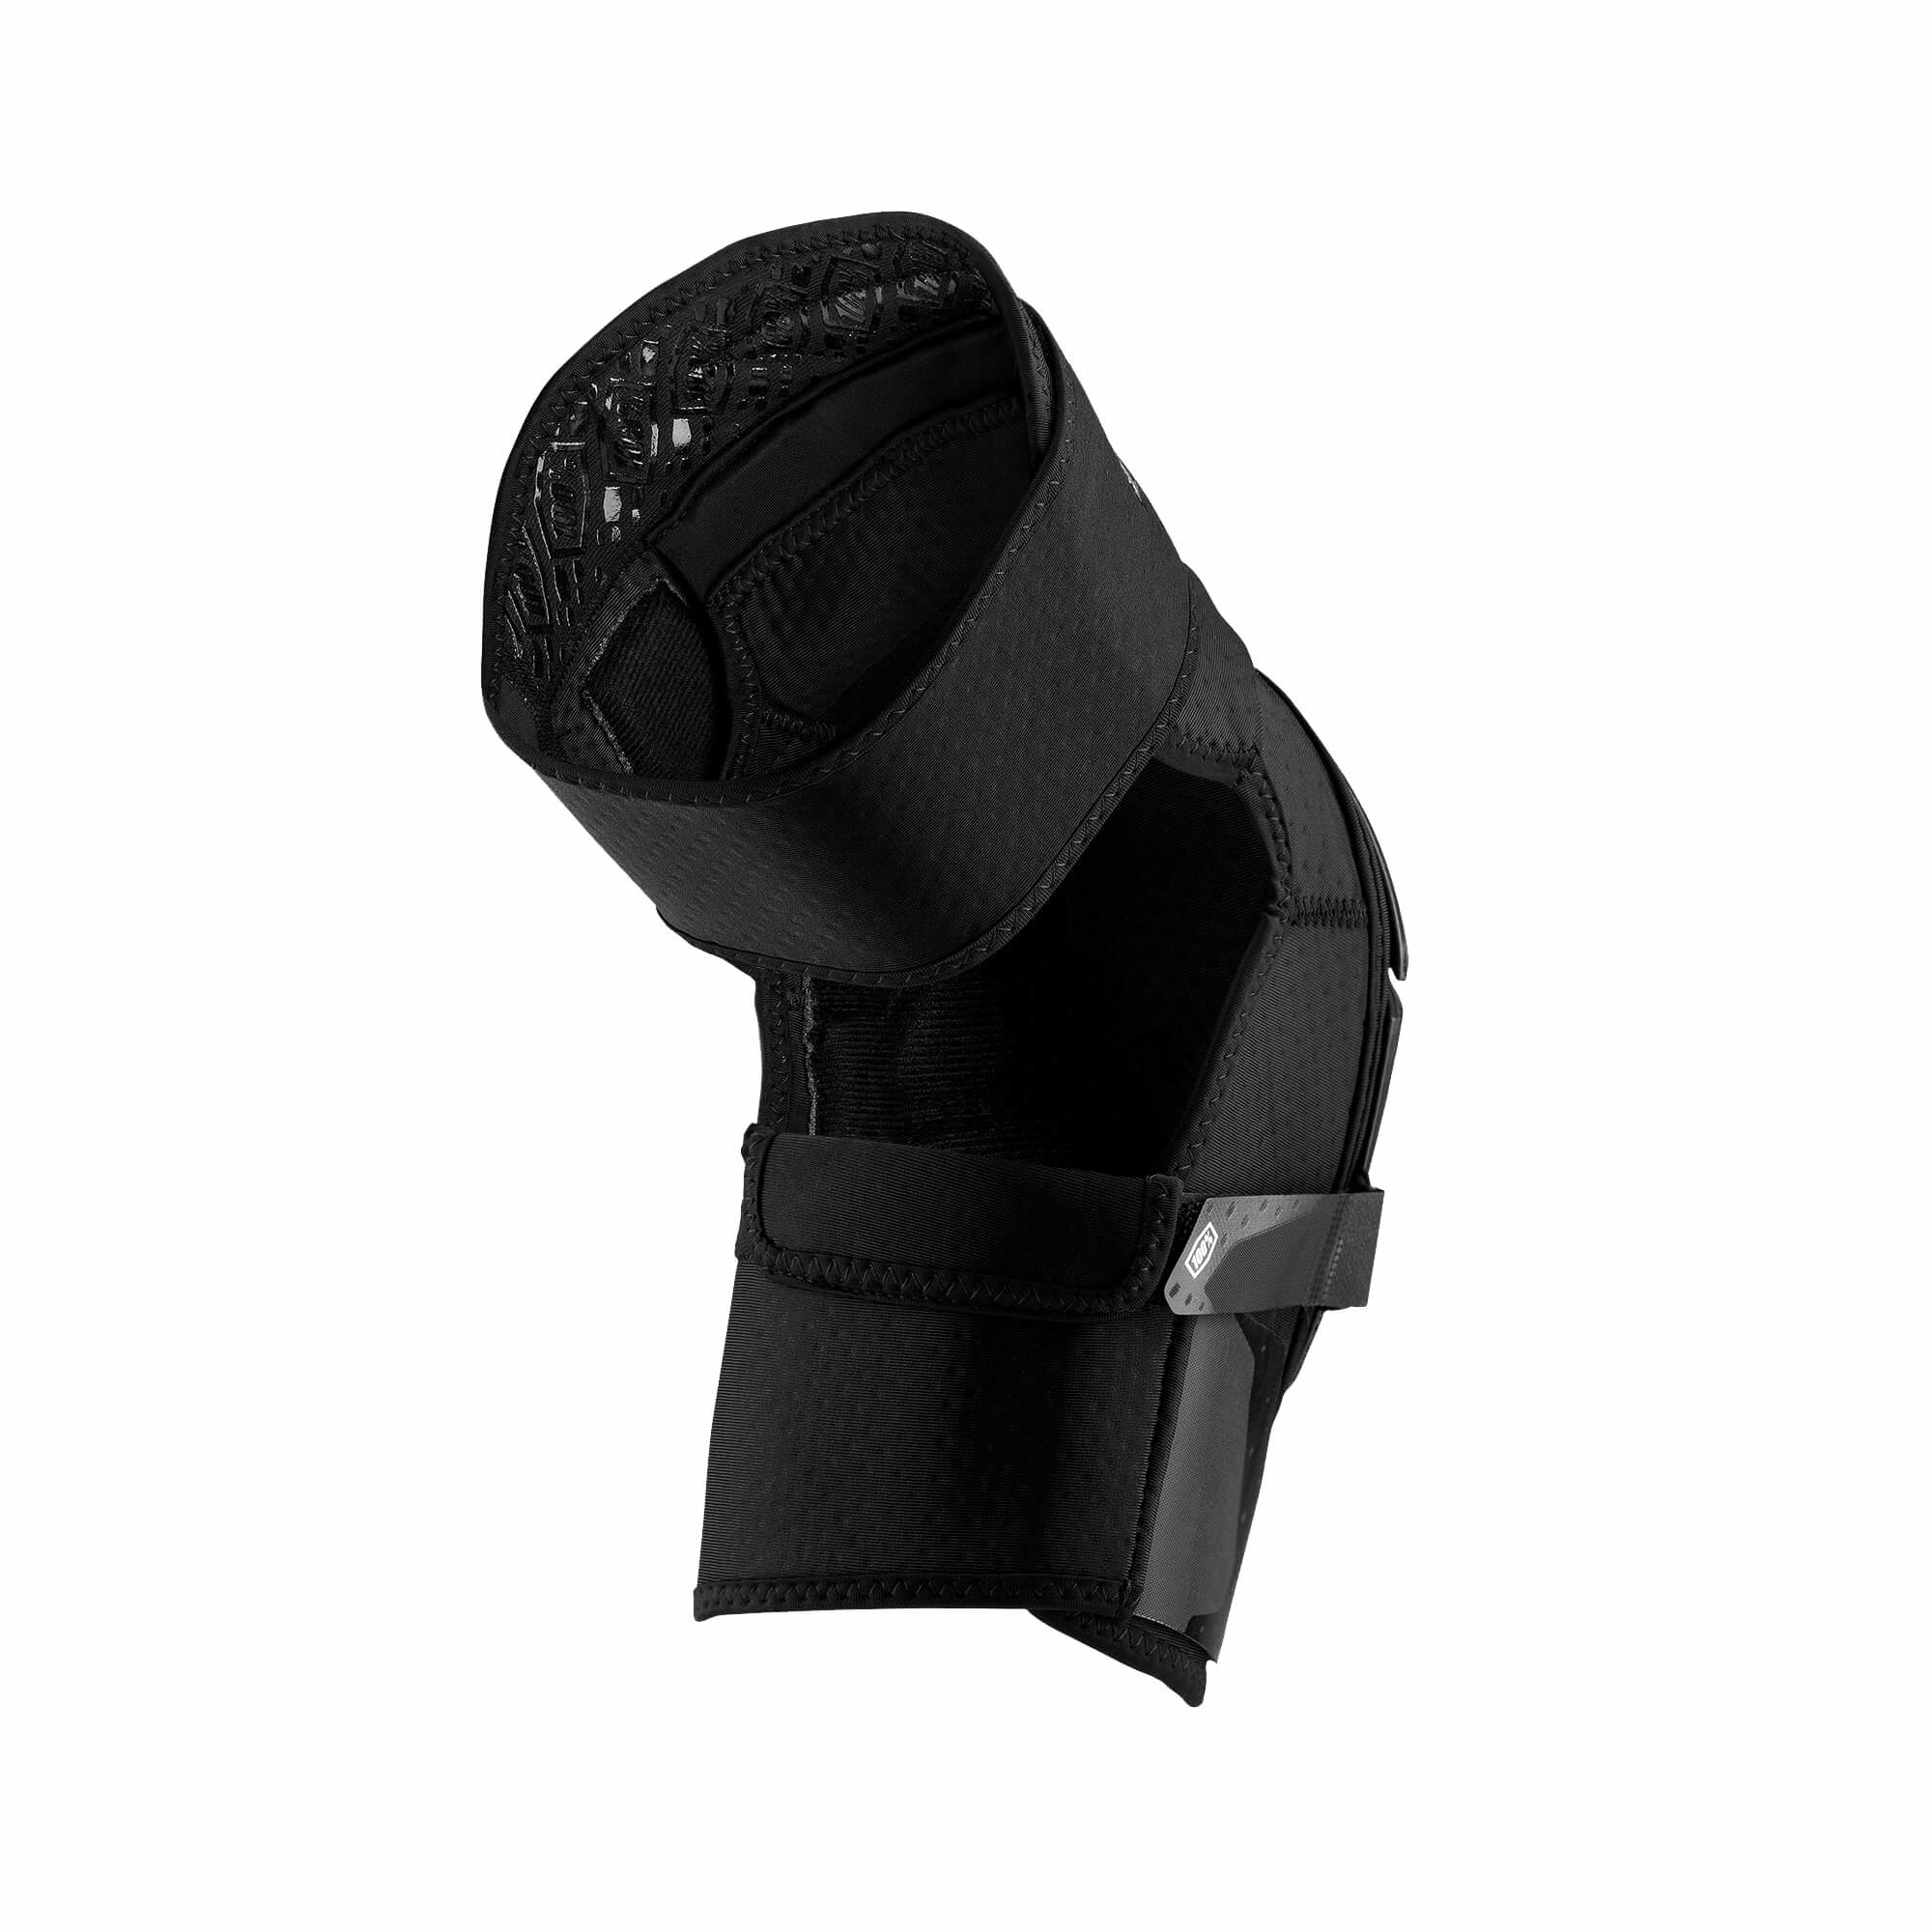 Fortis Knee Guard Black-2